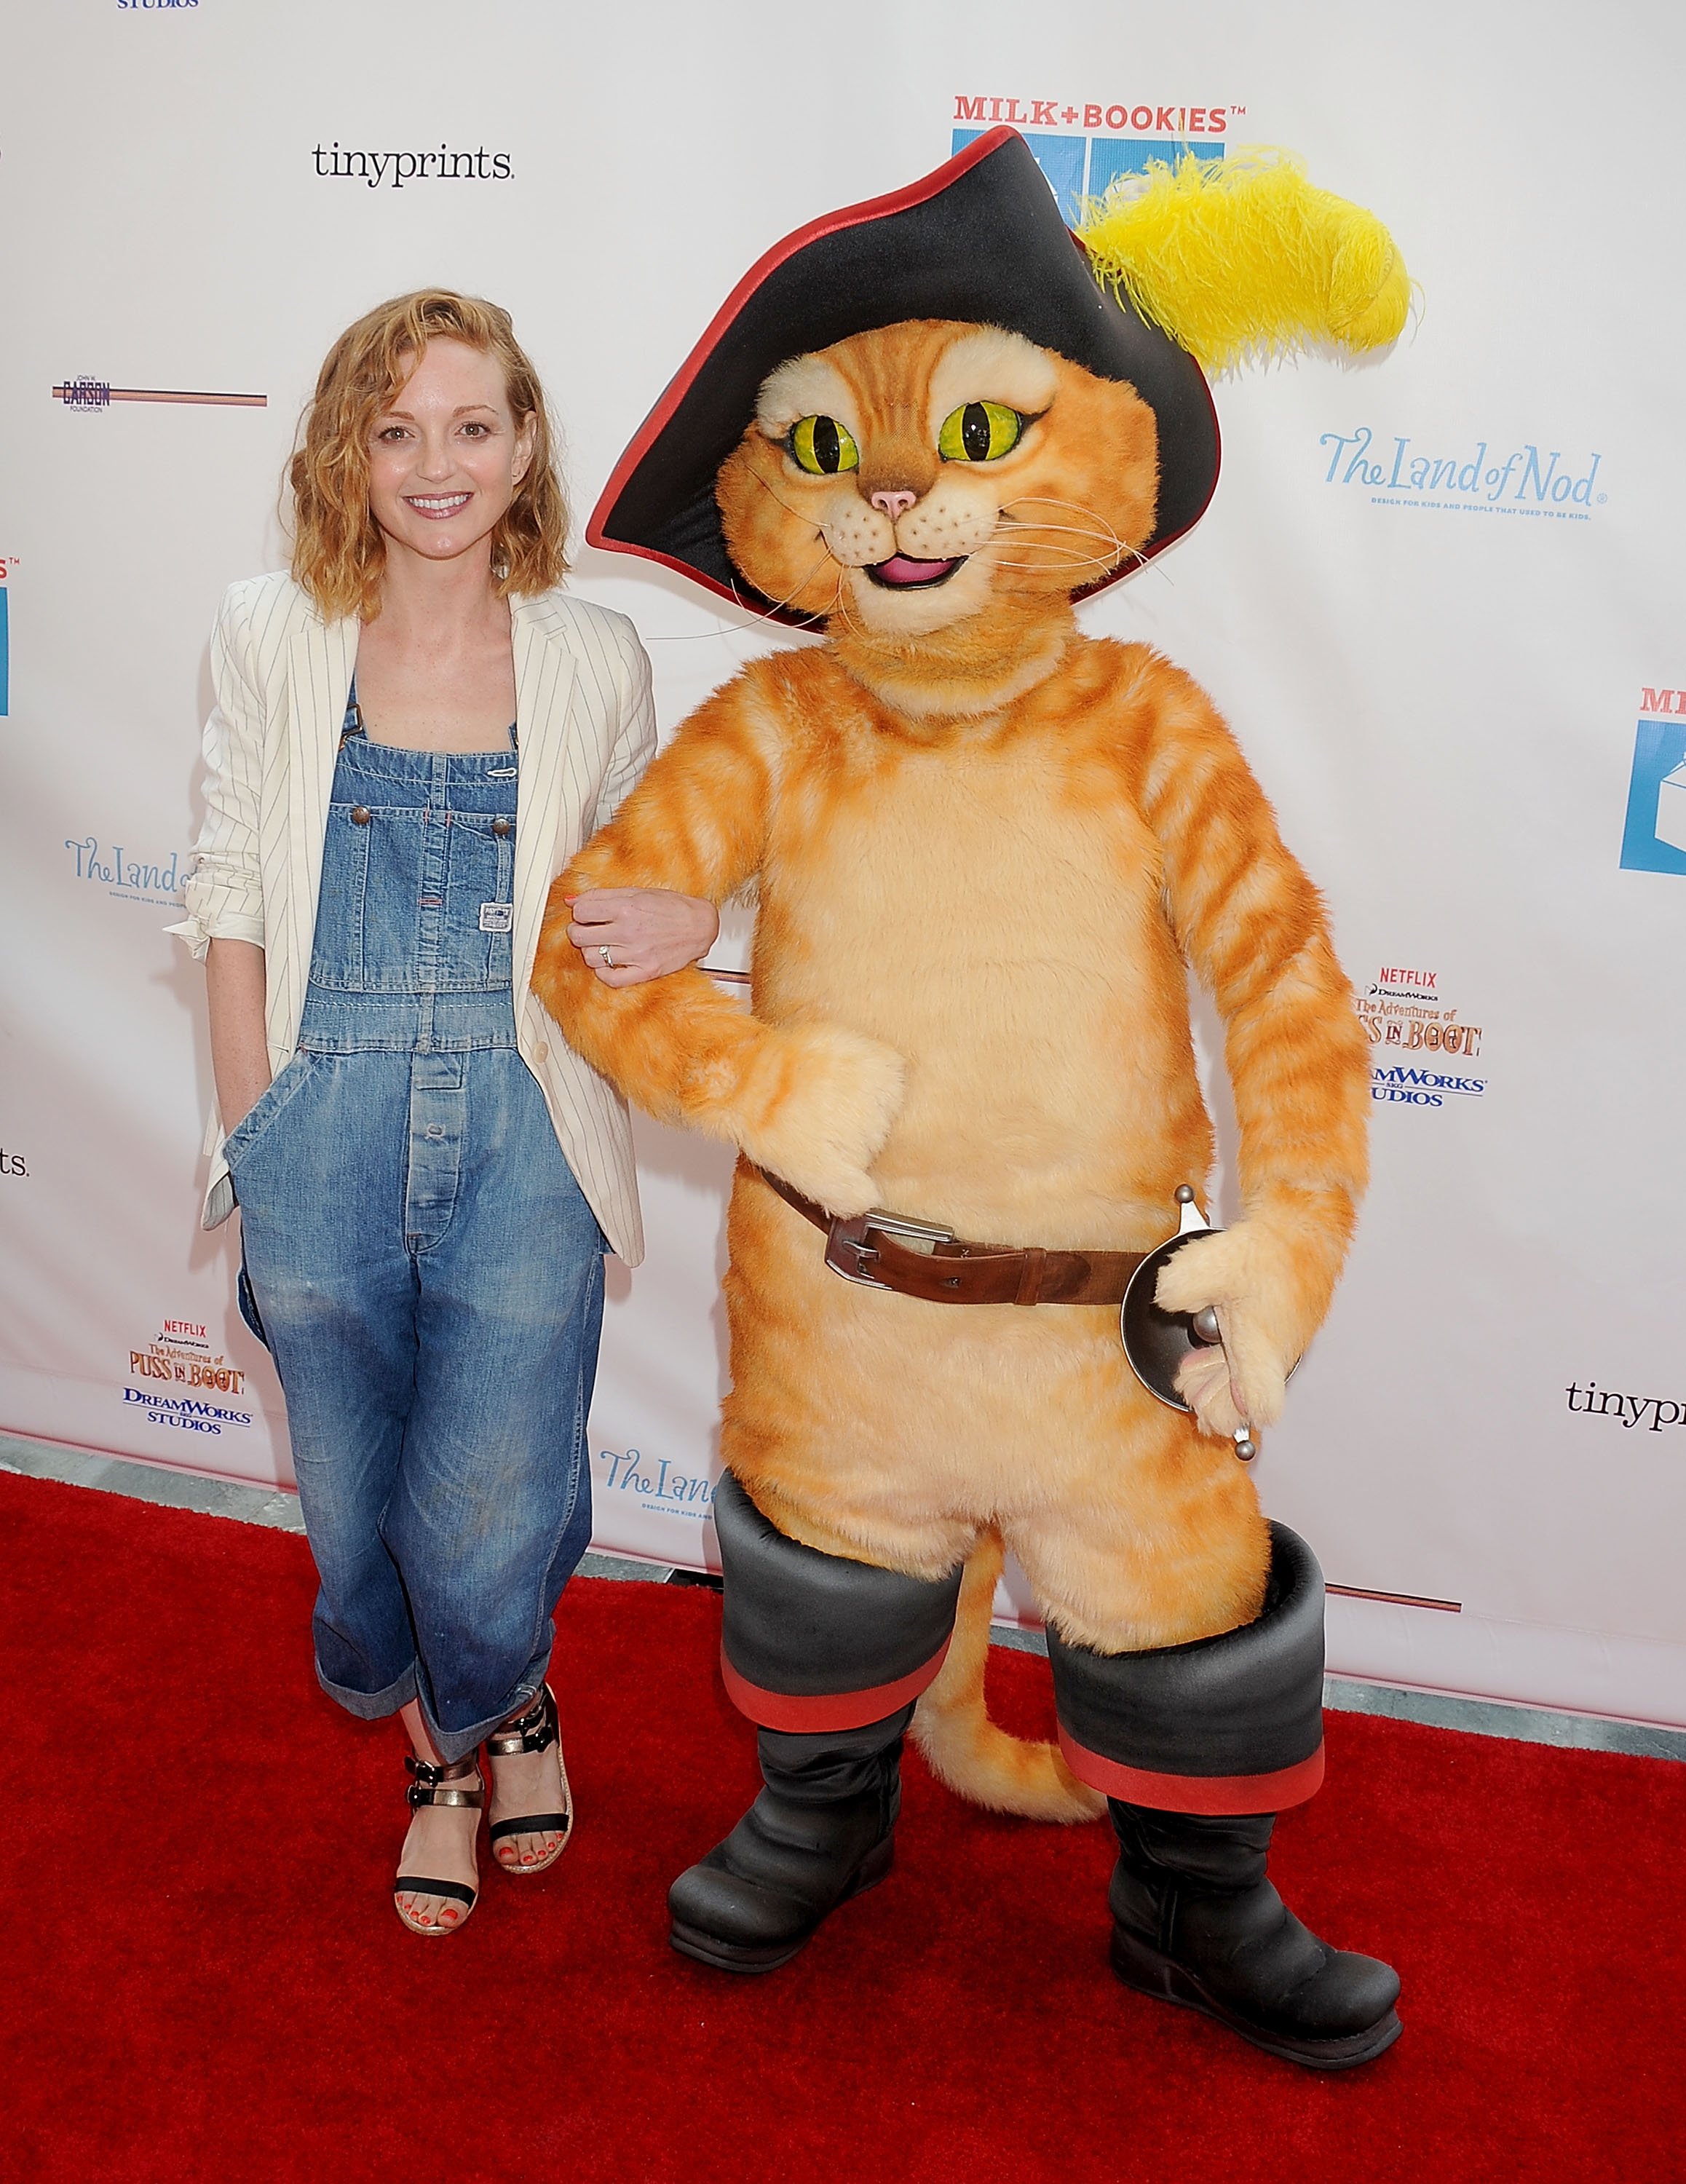 Jayma Mays arrives at the Milk + Bookies 10th Annual Story Time Celebration at Skirball Cultural Center on April 19, 2015 in Los Angeles, California.